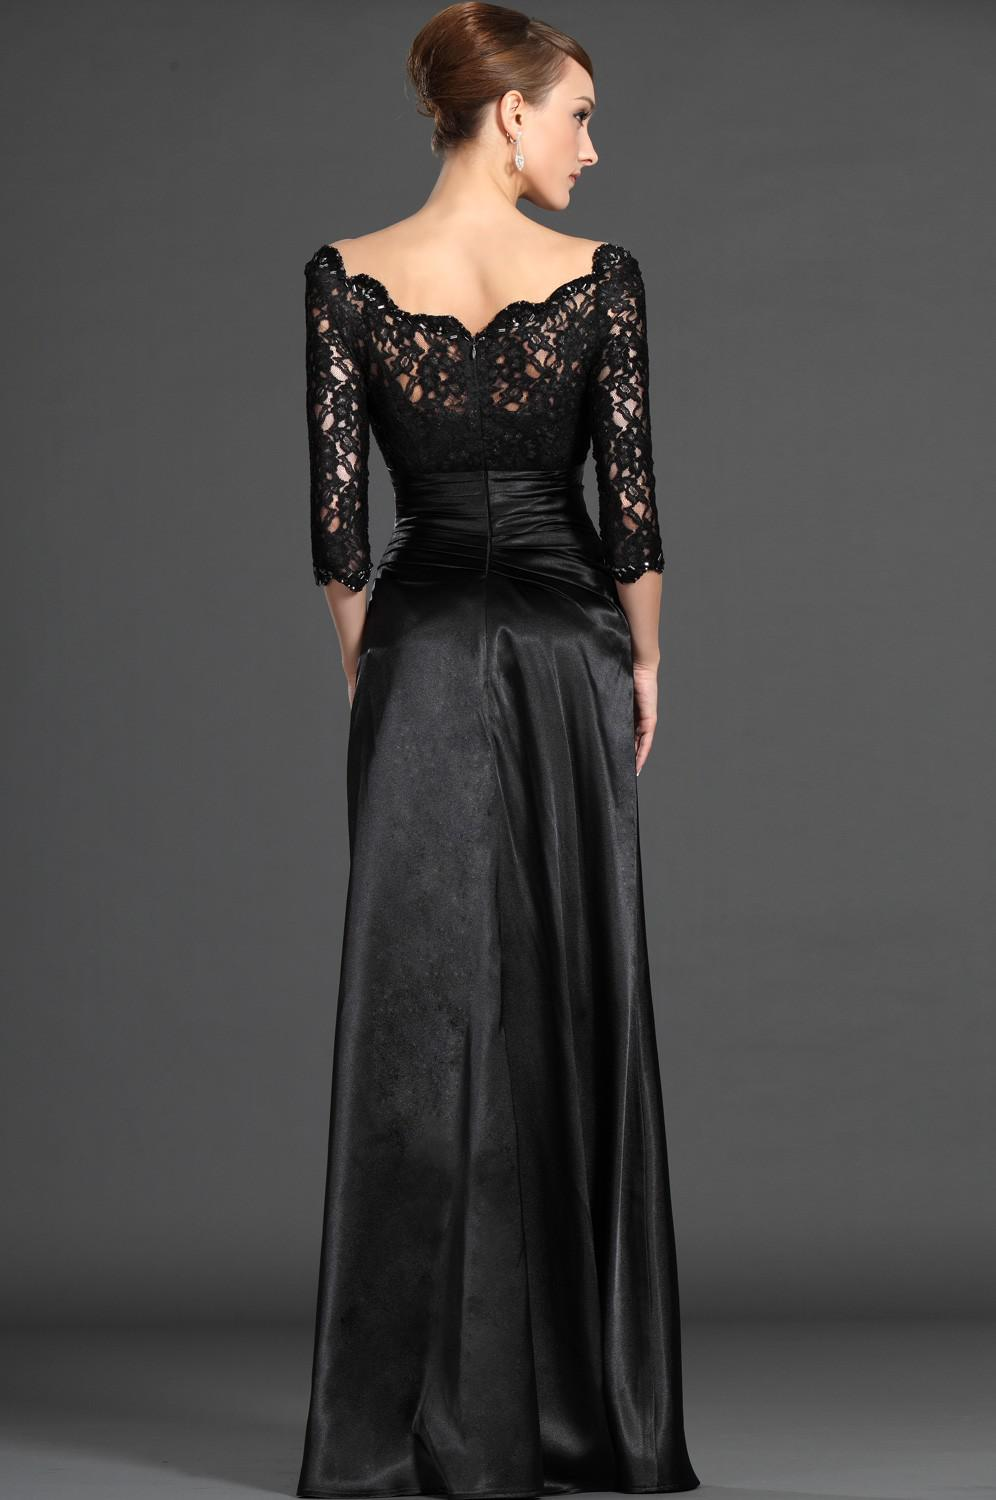 New Hot Selling Sexy Illusion Jewel Neckline 3/4 Sleeves Floor-Length Lace Evening/Mother of the Bride Dress Mommy Dresses